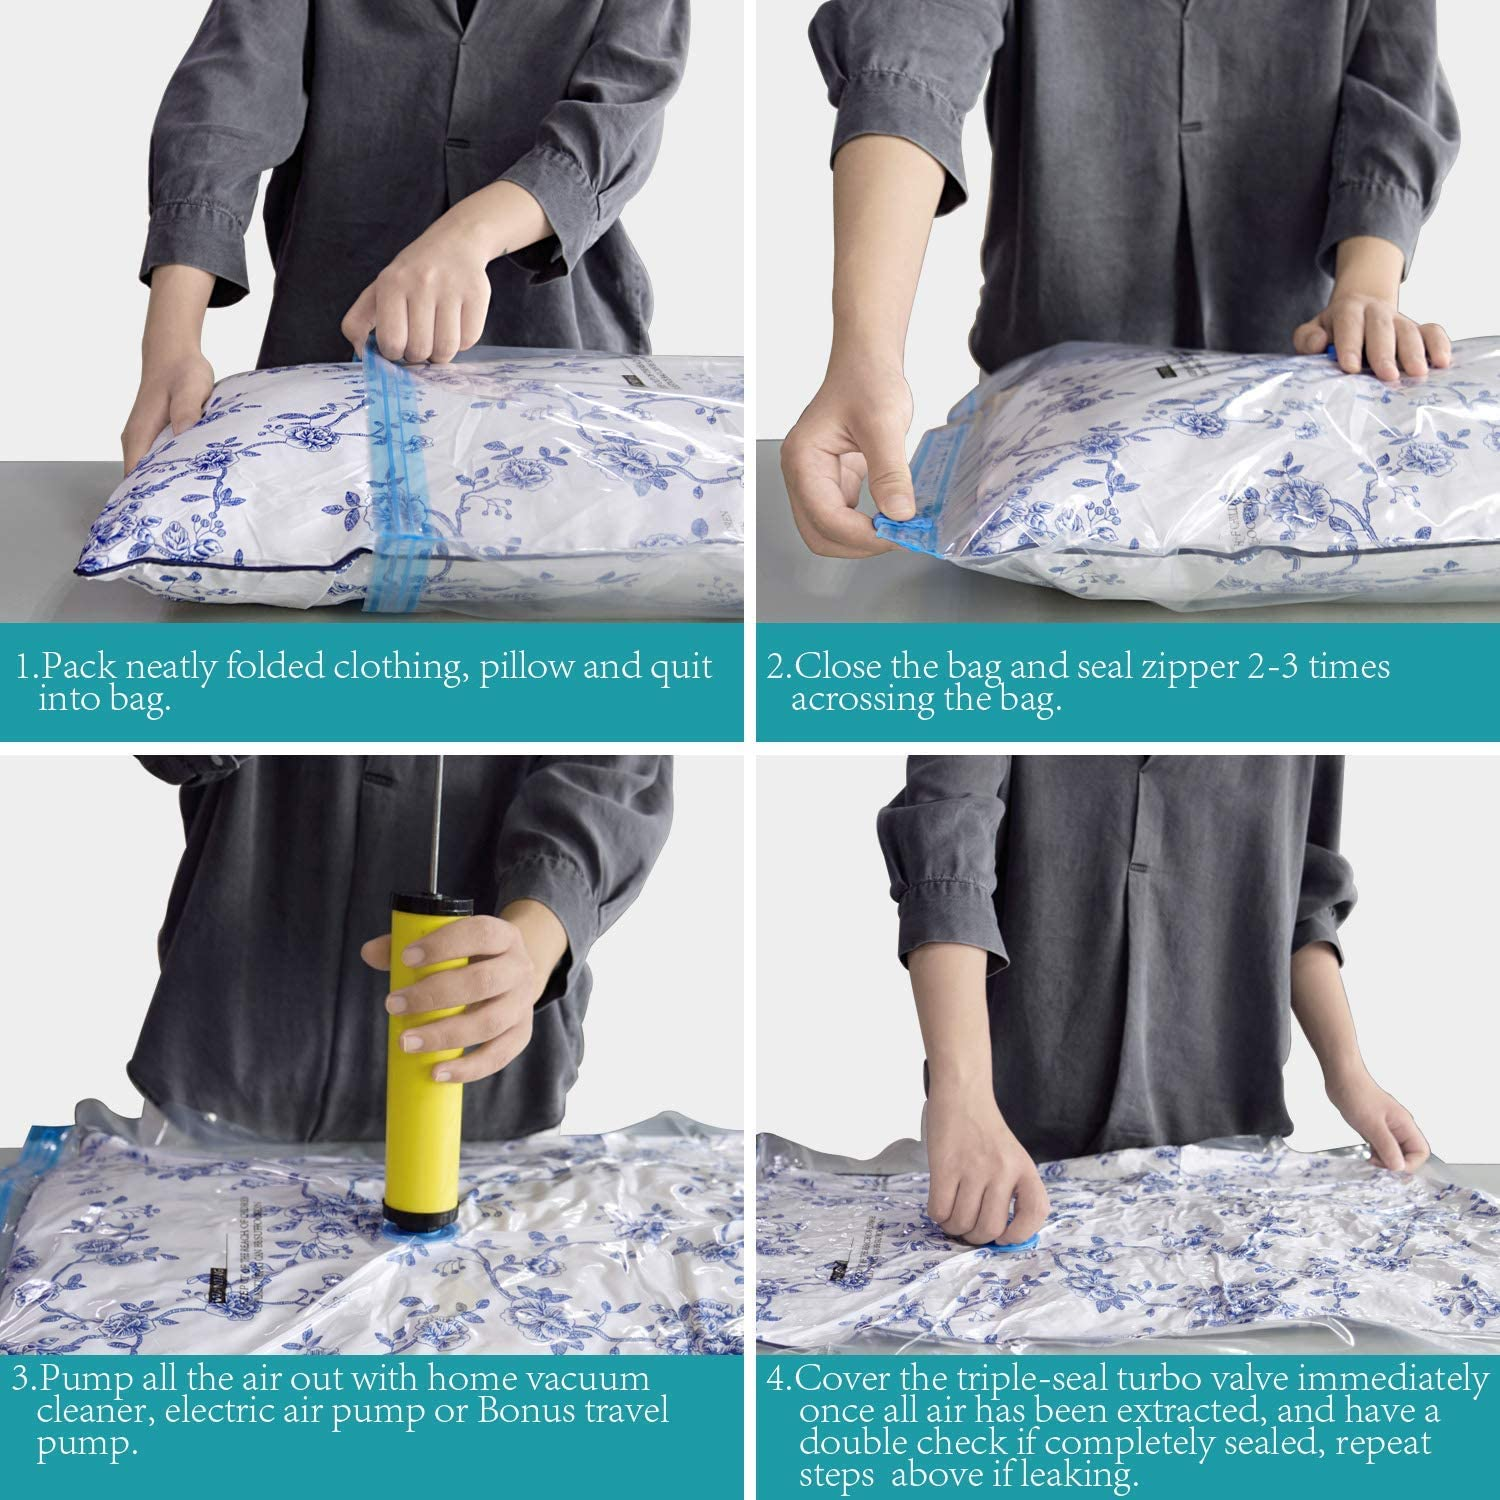 Hand Pump Included Space Saver Seal Bag 10 Jumbo AirBaker Vacuum Storage Bags for Travel Clothes Comforters Blankets Pillows